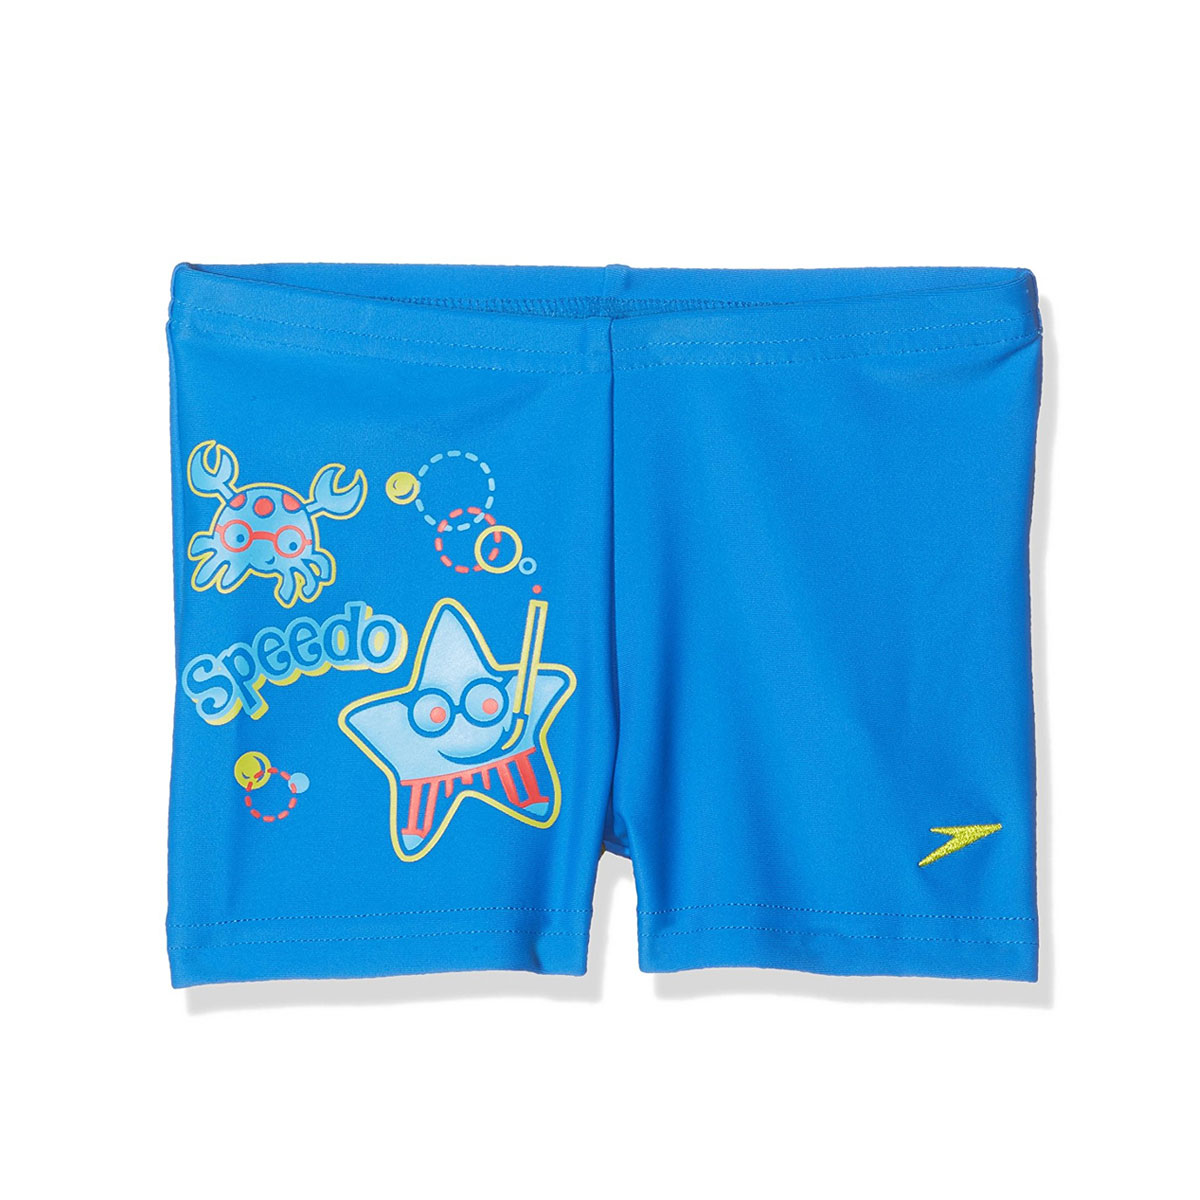 SPEEDO SEASQUAD PLACEMENT AQUASHORT 8-09219B419 Ρουά bebe   ενδύματα   μαγιό